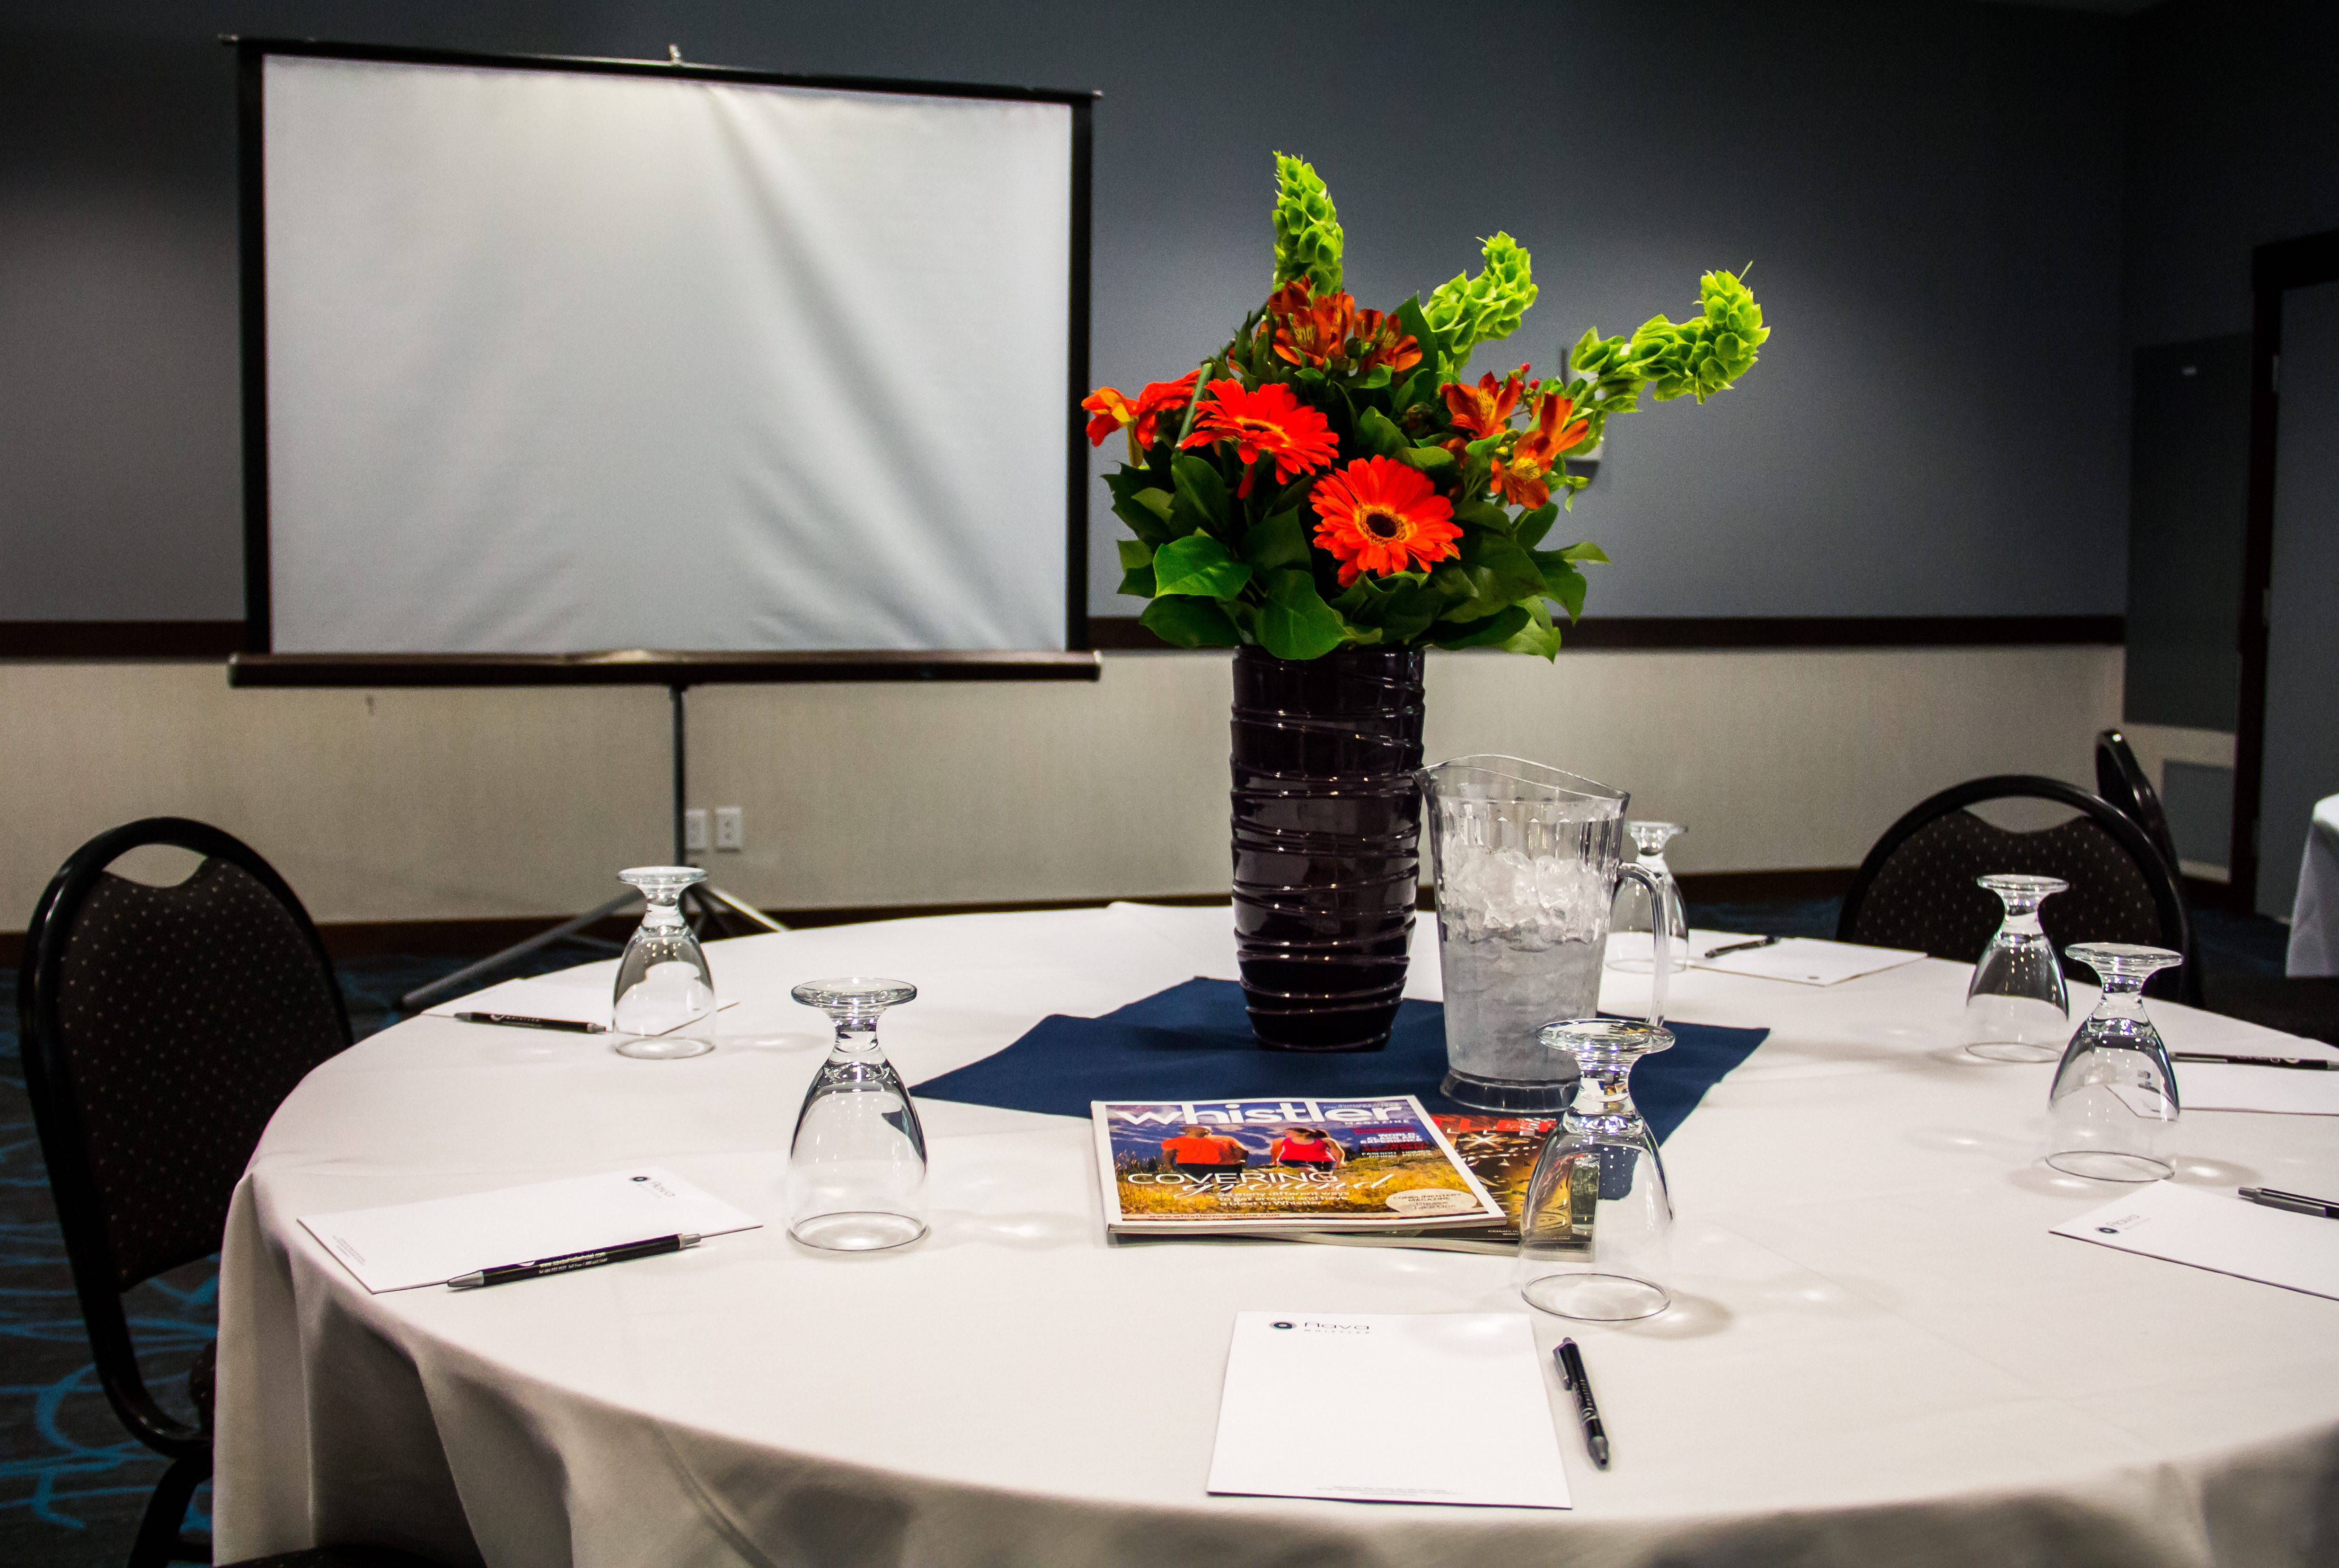 interior photo conference room pen and paper pad on the table jug of water glass decorated landscape floral decoration flowers centrepiece magazines projector screen in background